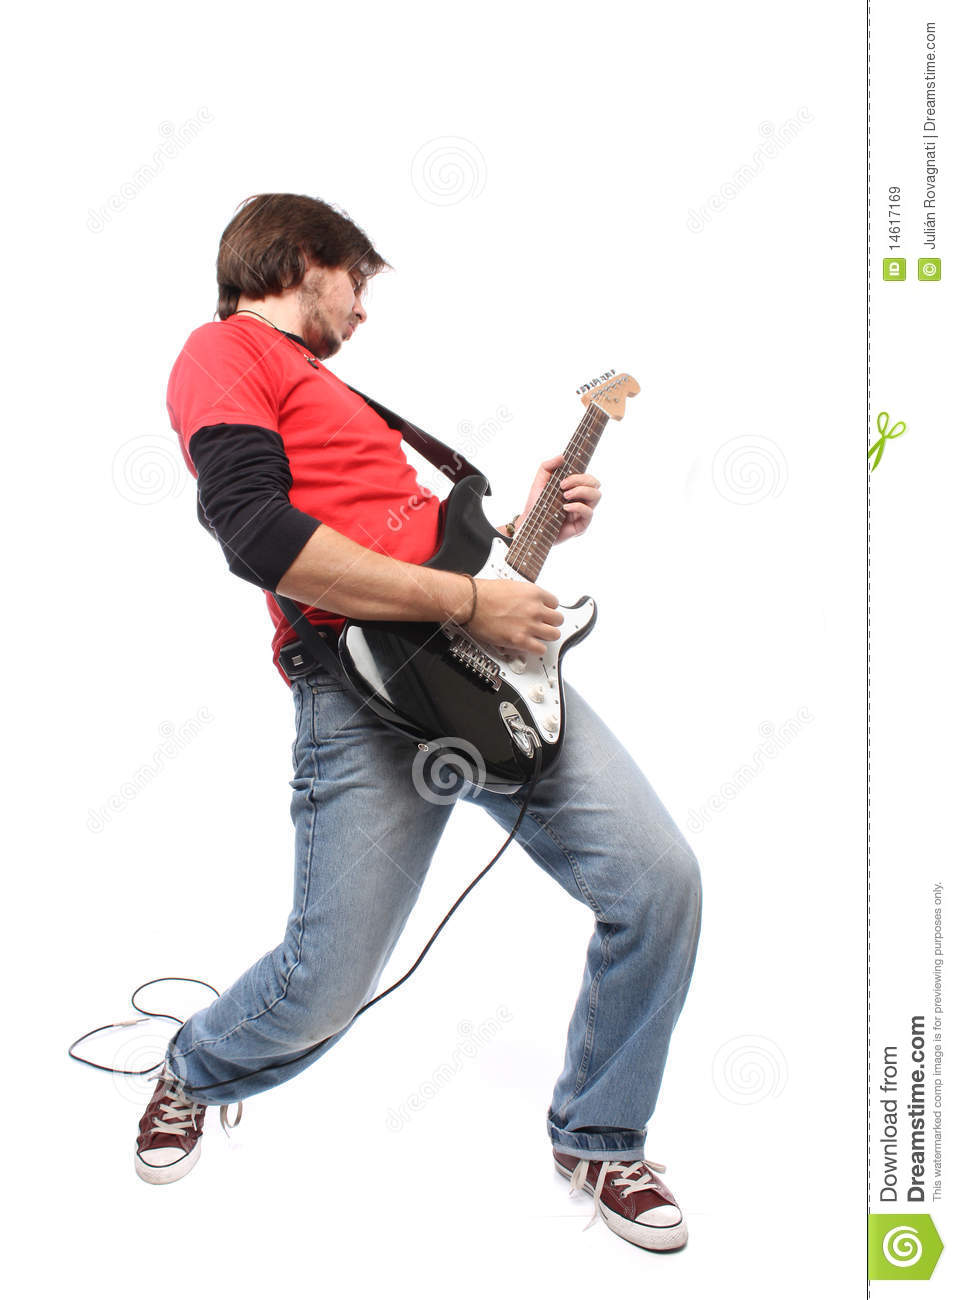 Guitar Player Royalty Free Stock Images - Image: 14617169